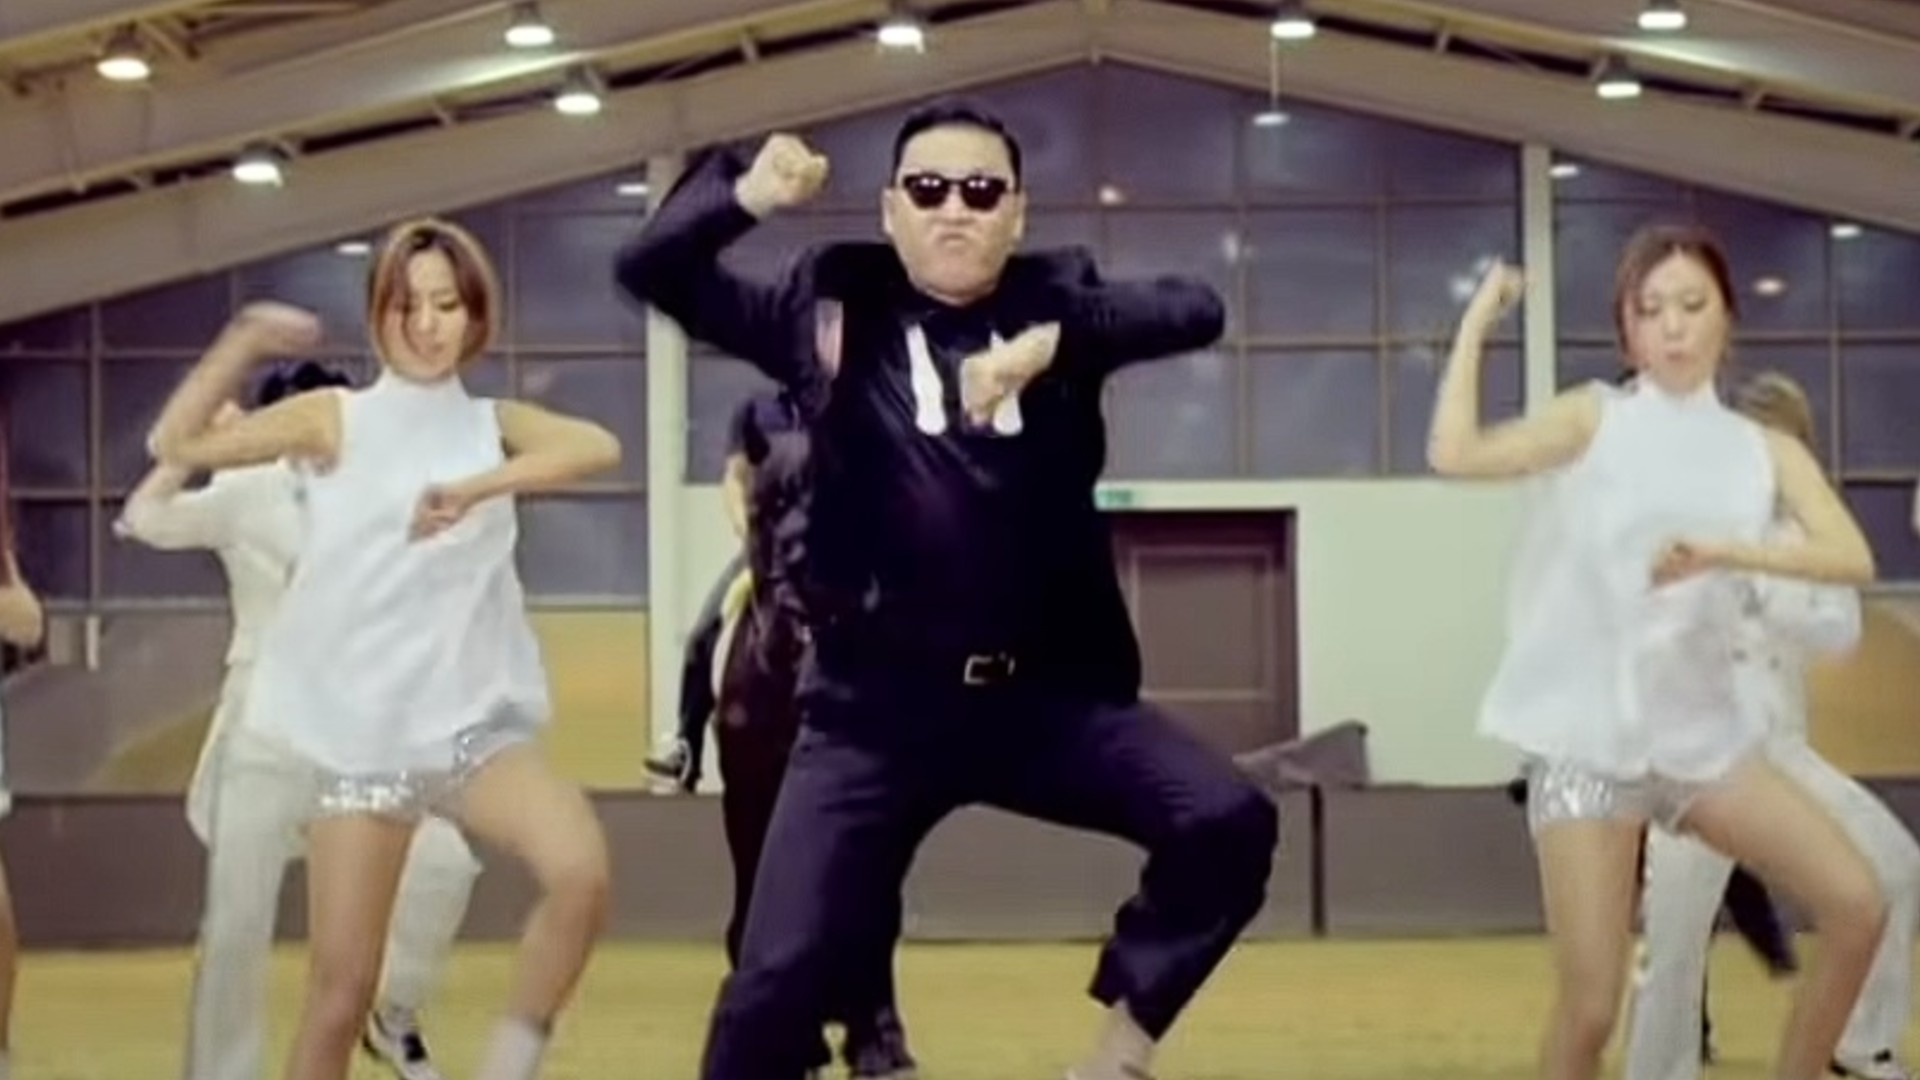 Fortnite is getting a Gangnam Style emote because I guess it's 2012 again